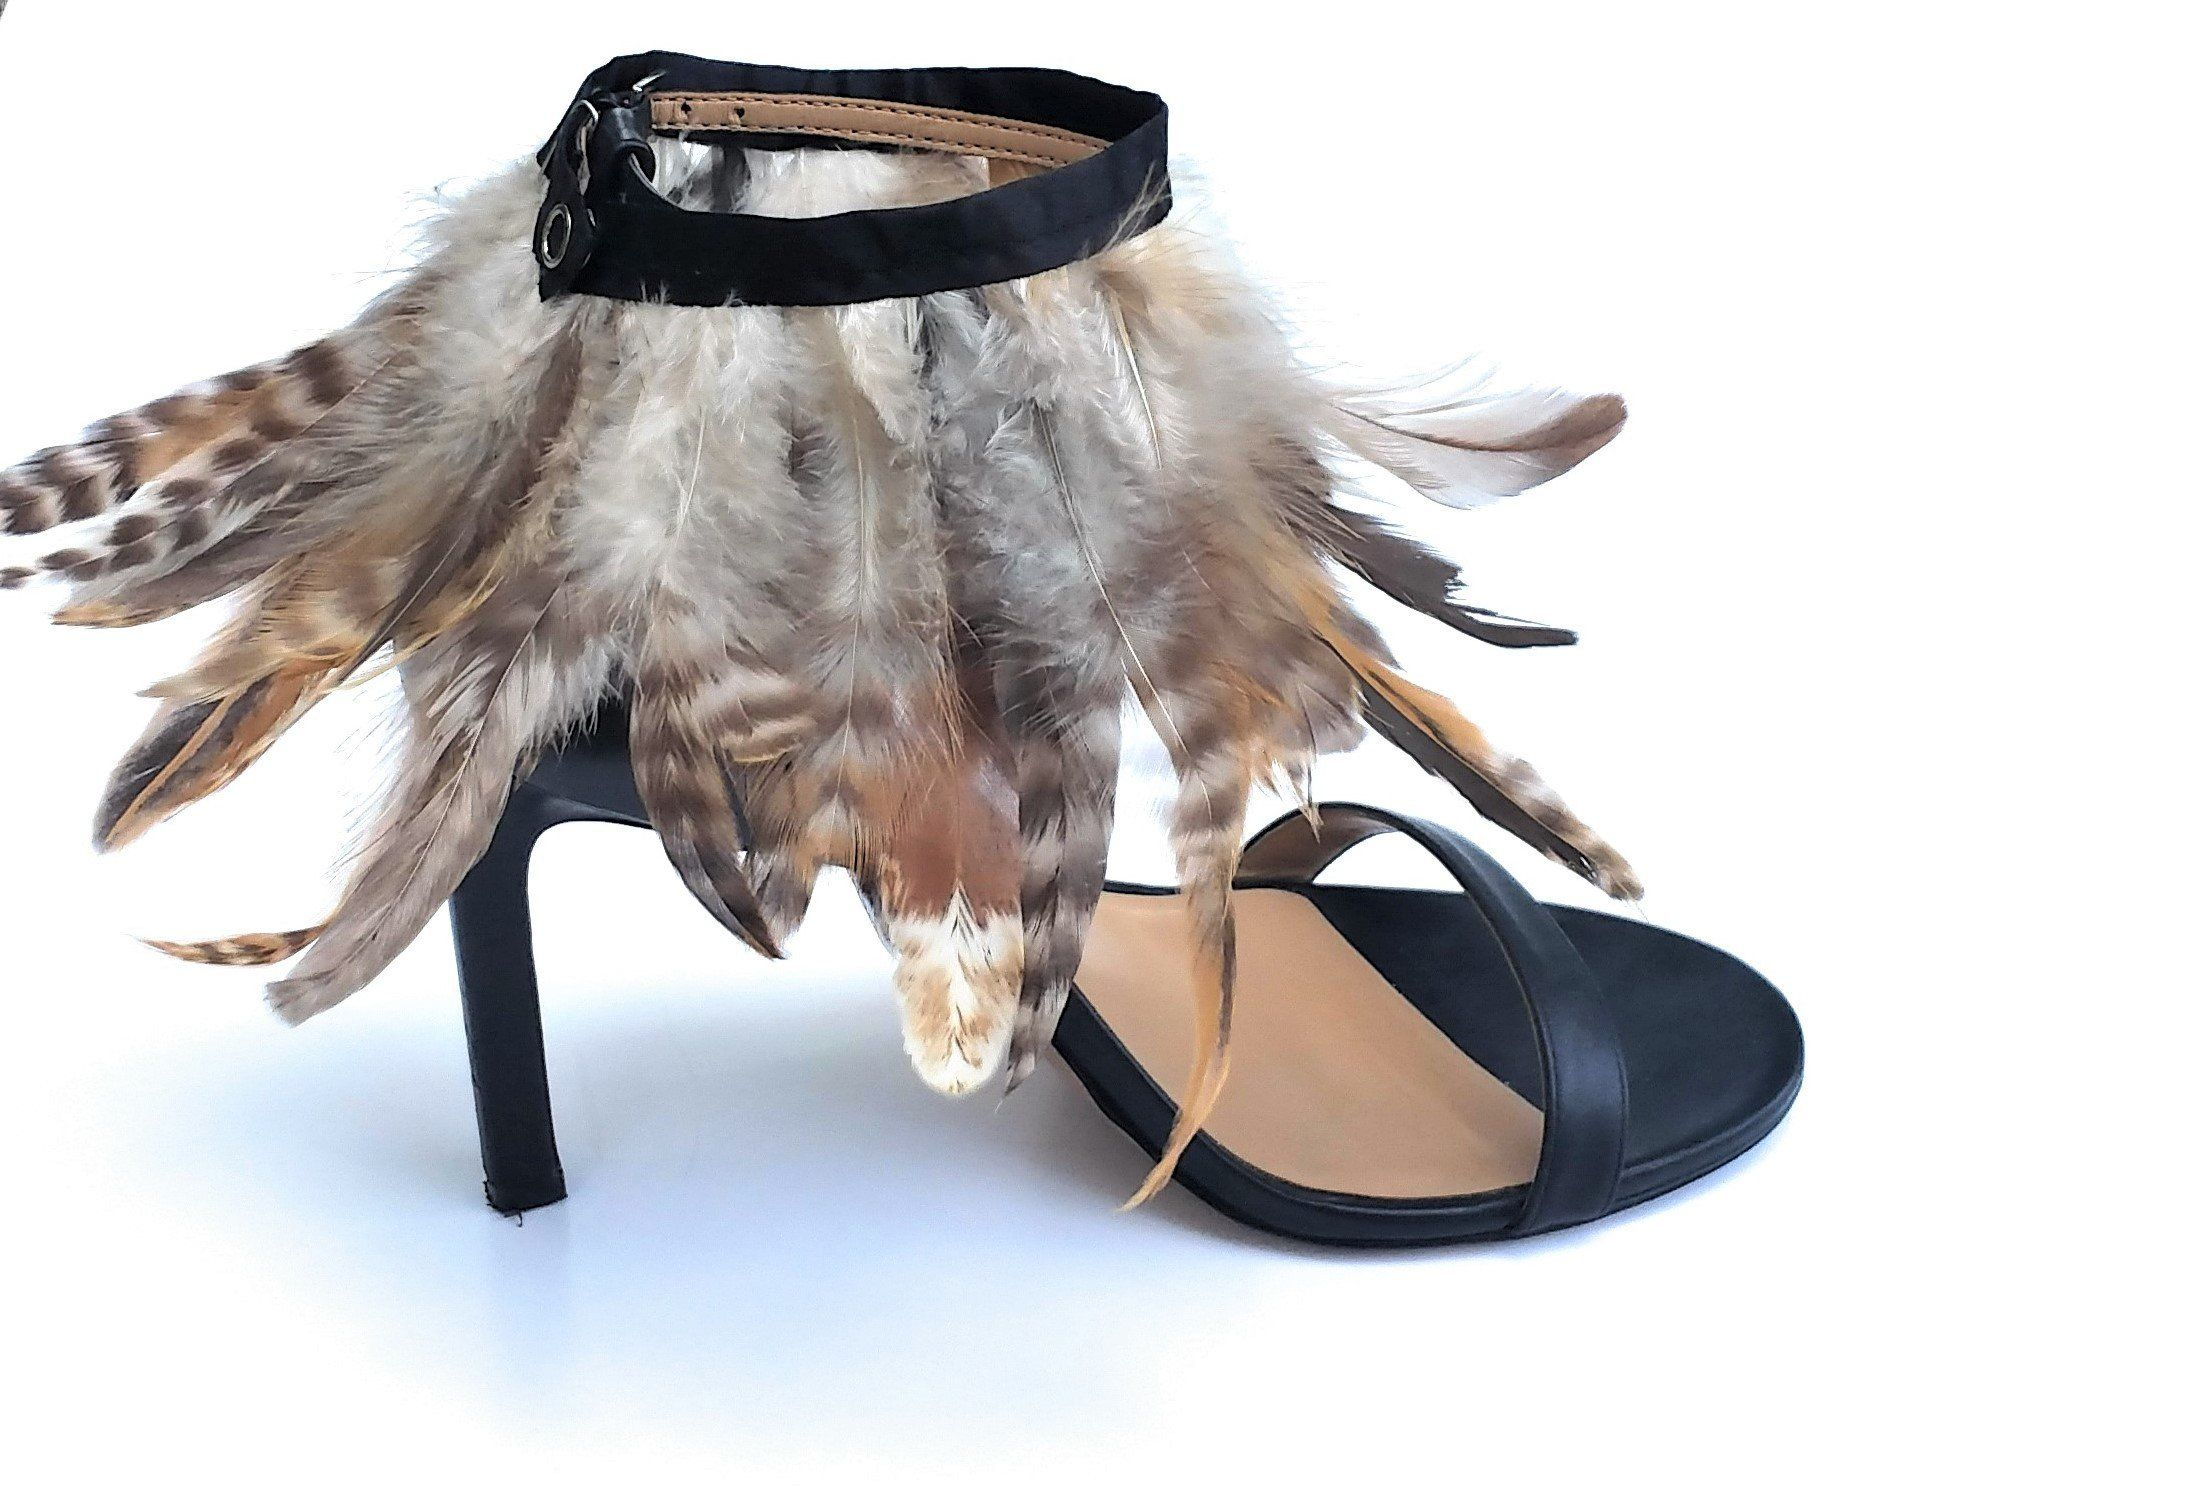 Feather Shoe Clips Feathers Shoe Accessories Anklet Black Ankle Accessories